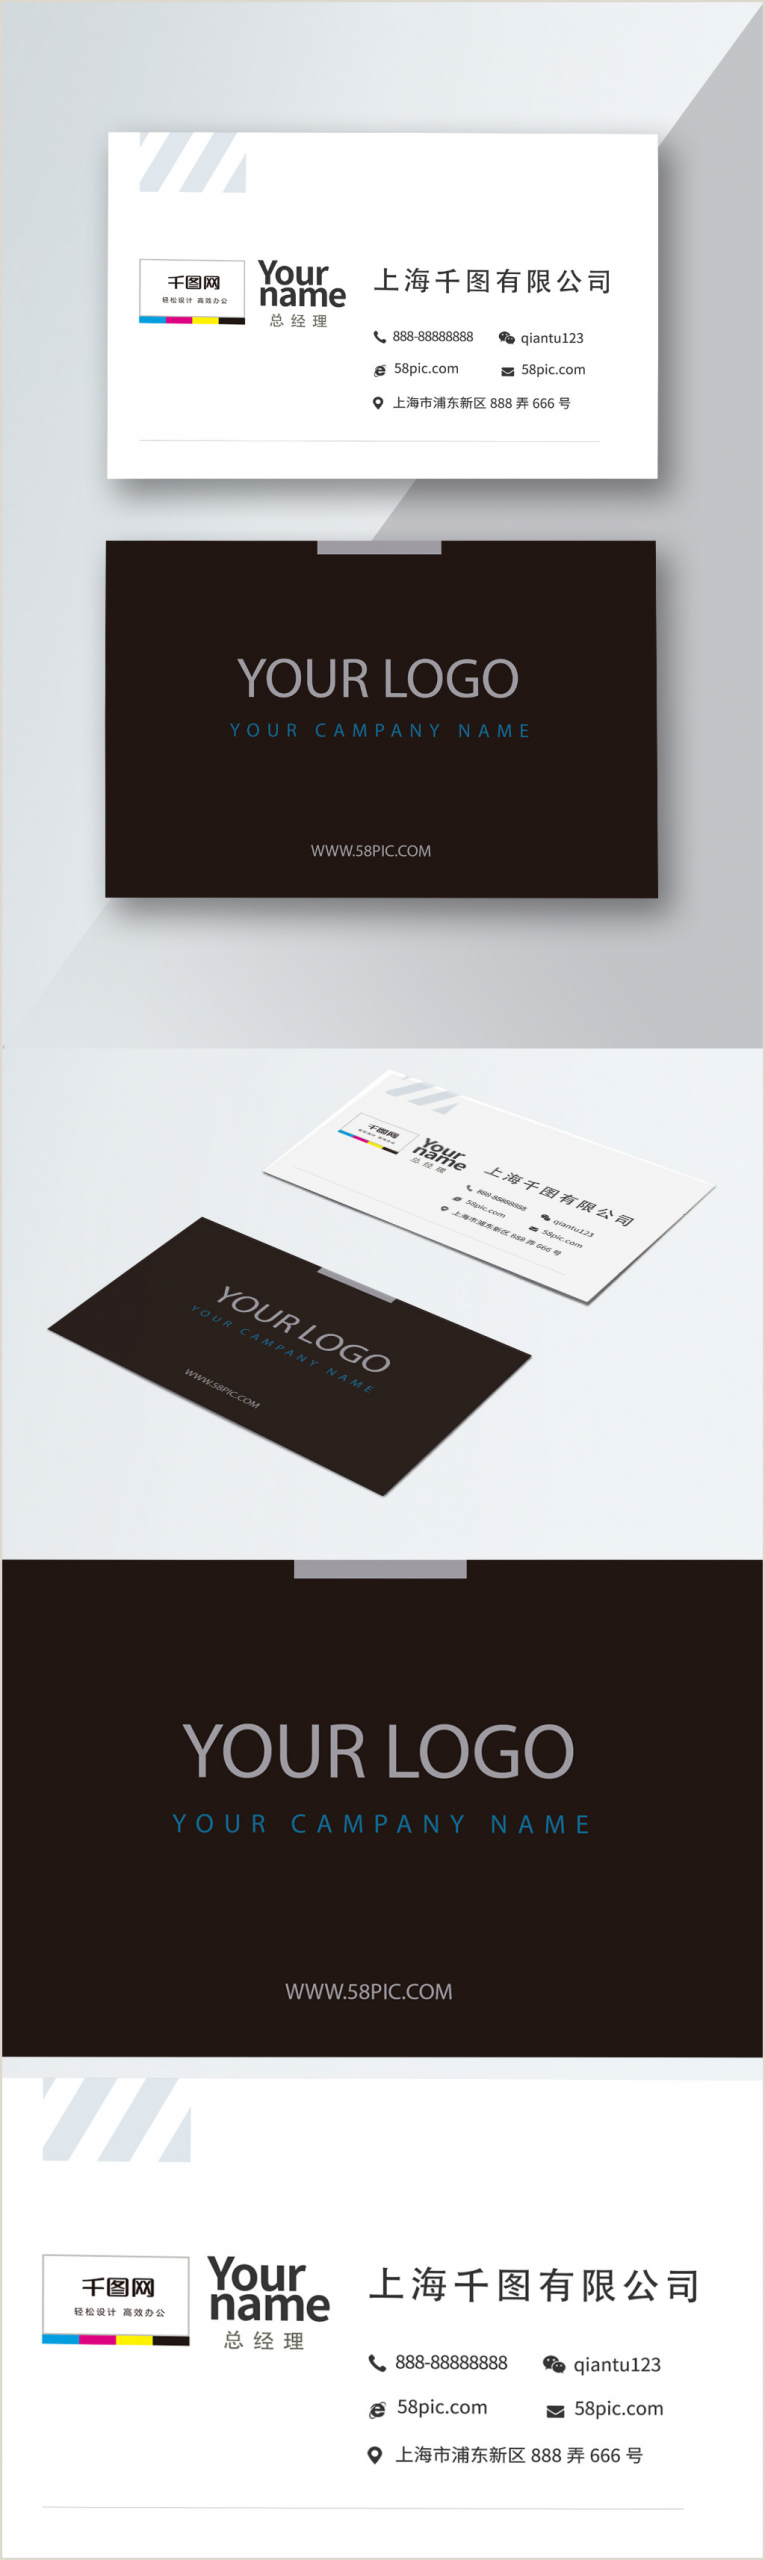 Black And White Business Card Black And White Business Senior Business Card With Qr Code